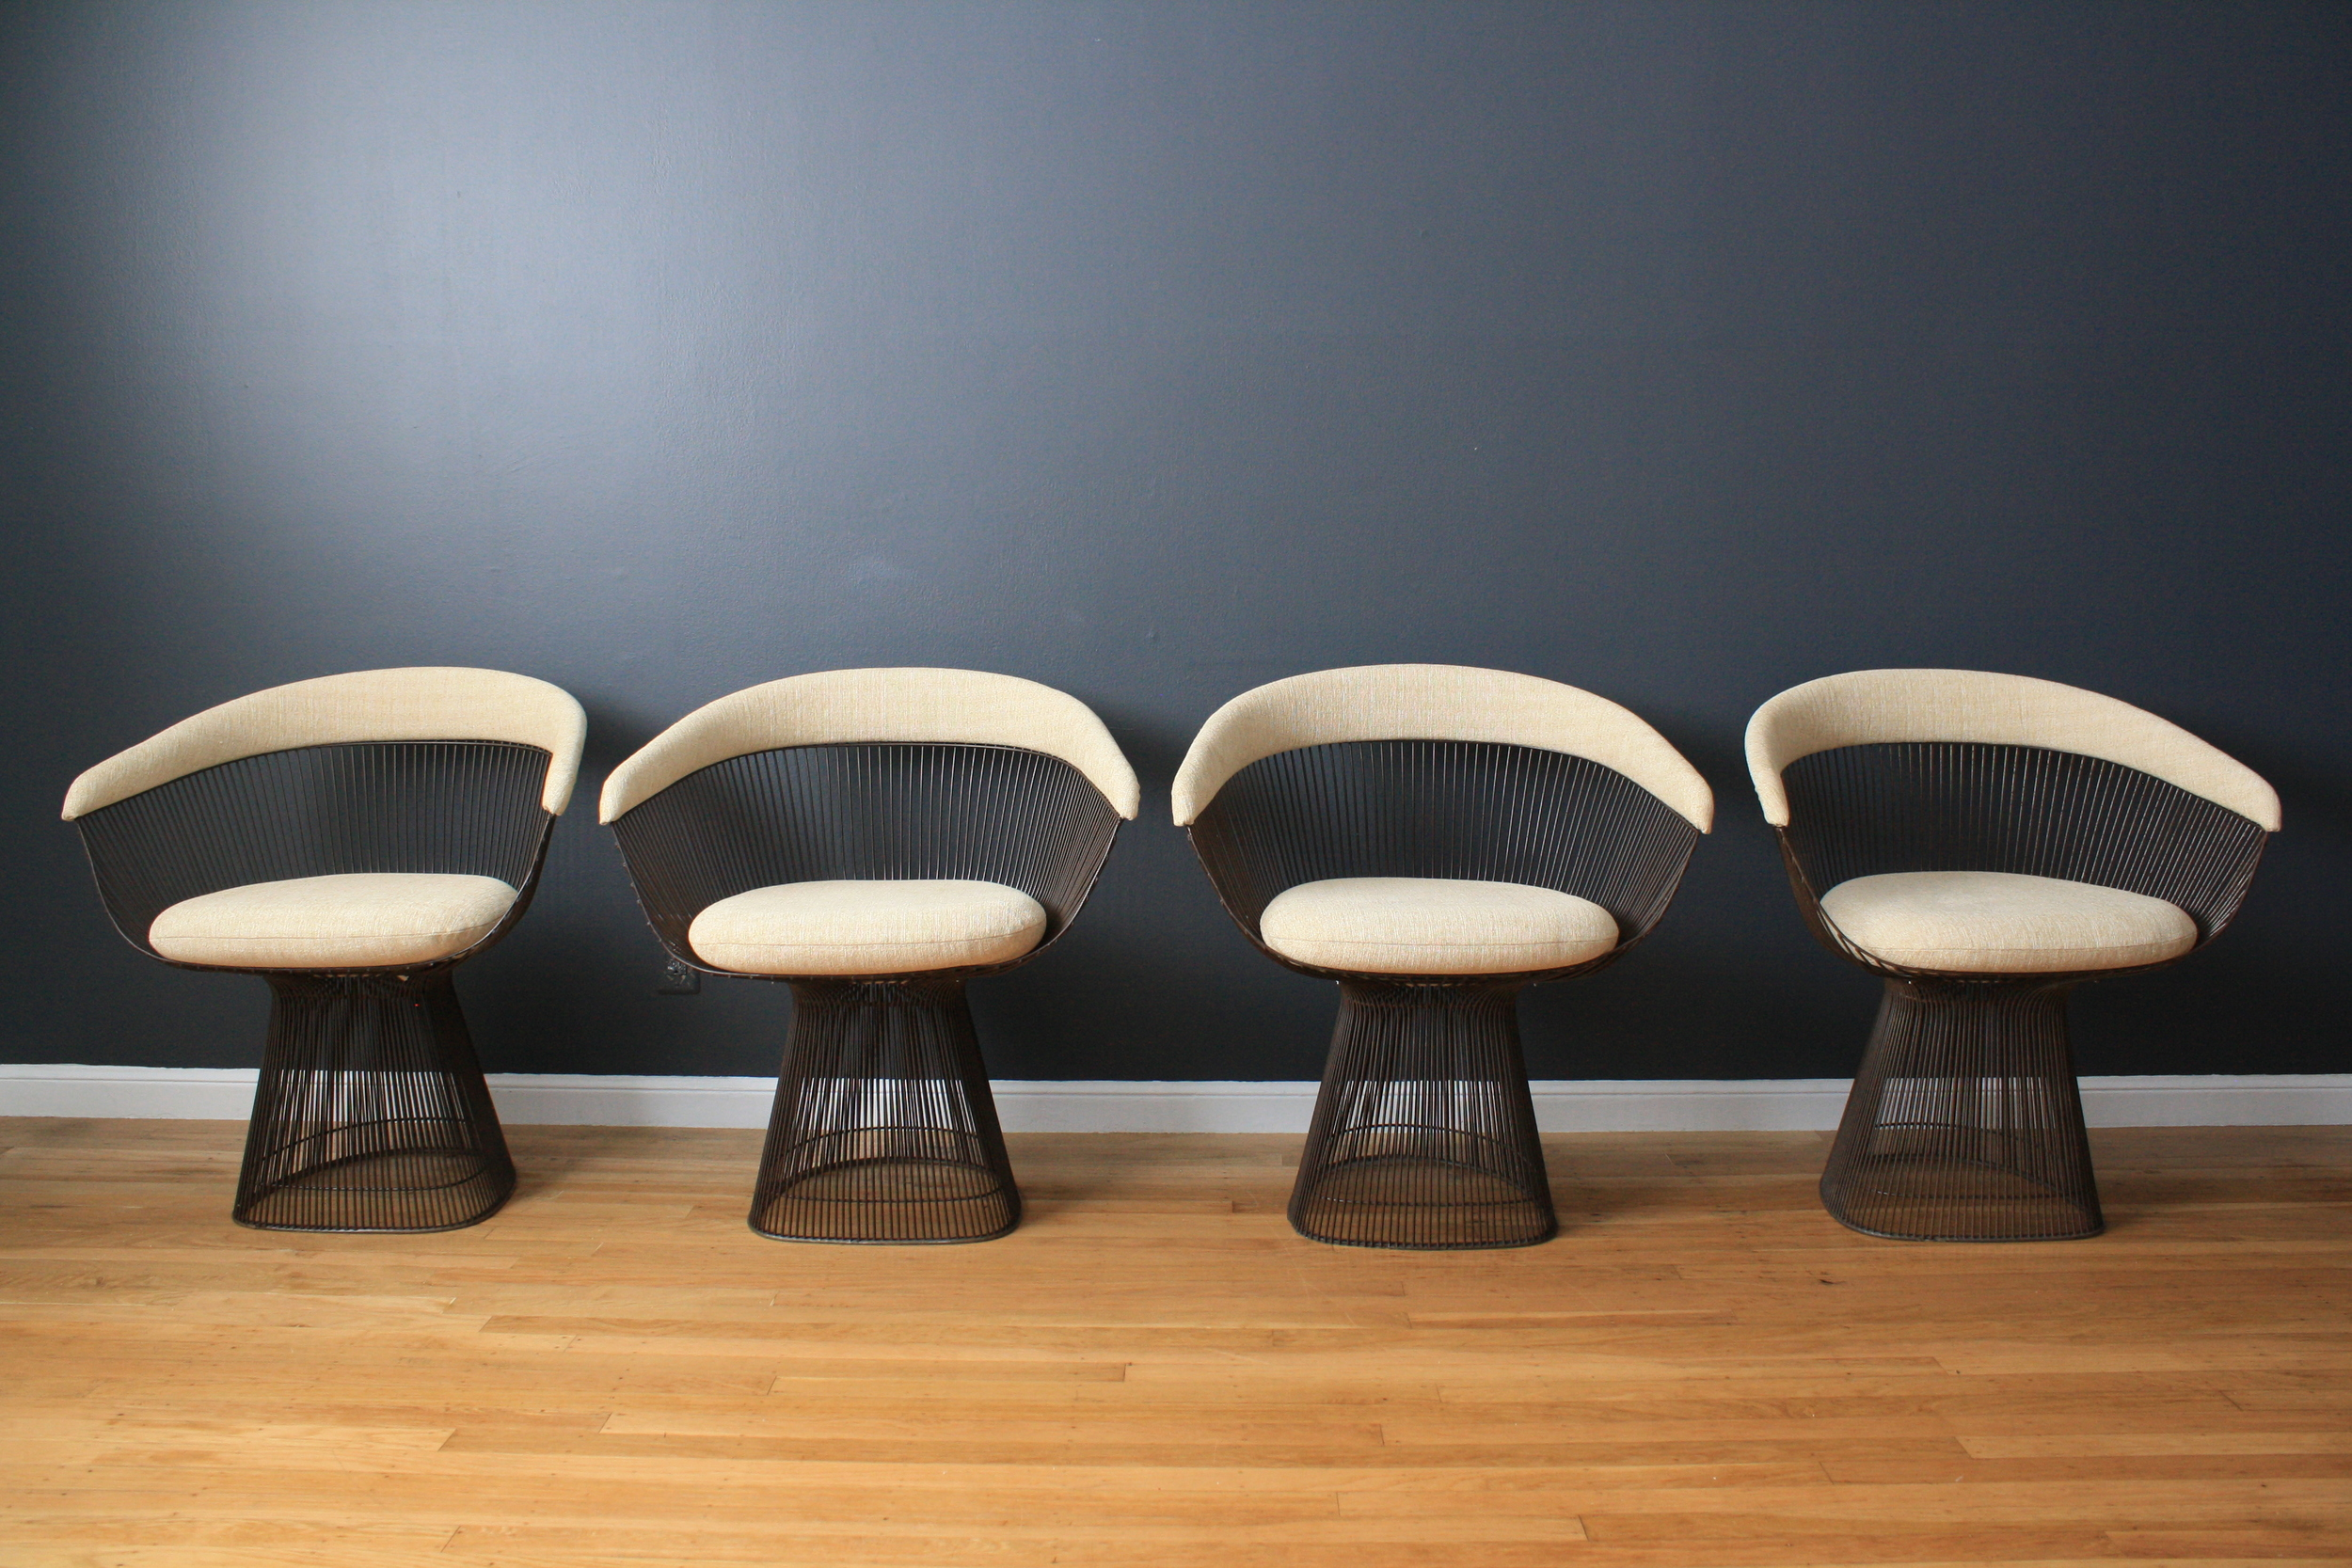 Set of Four Bronze Chairs by Warren Platner for Knoll